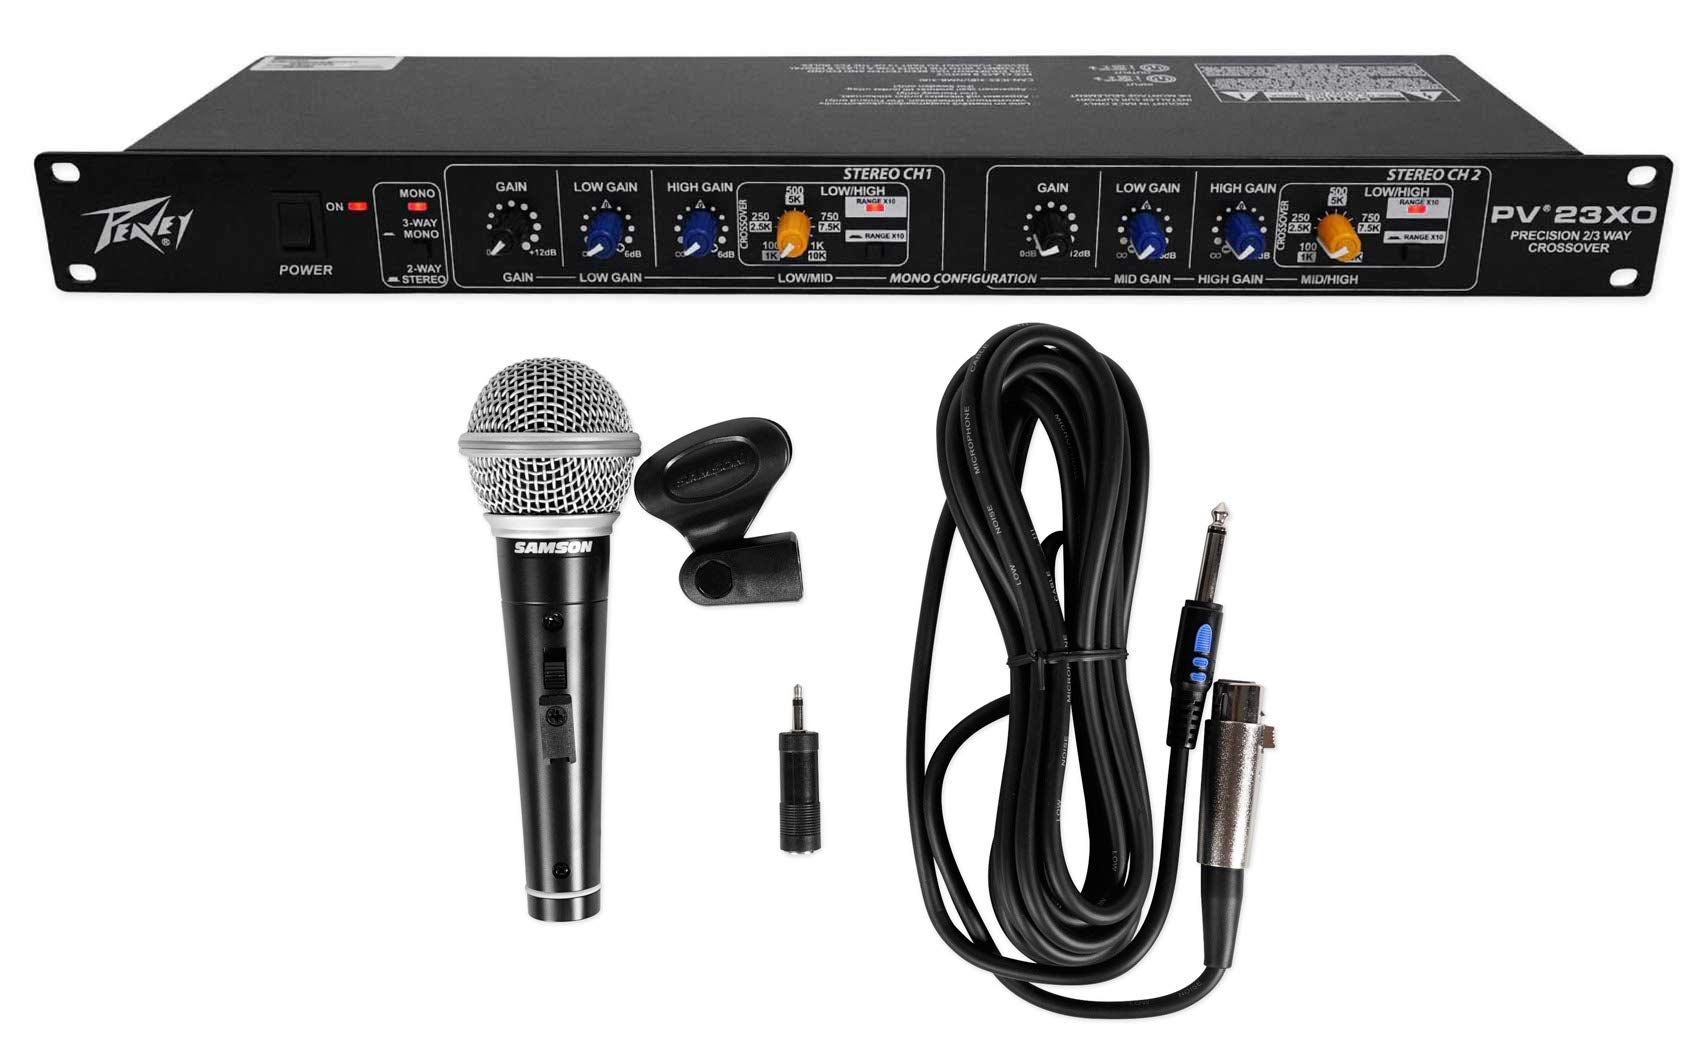 Peavey PV 23XO 2-Way Stereo/3Way Mono Crossover+Samson Microphone+Cable+Clip